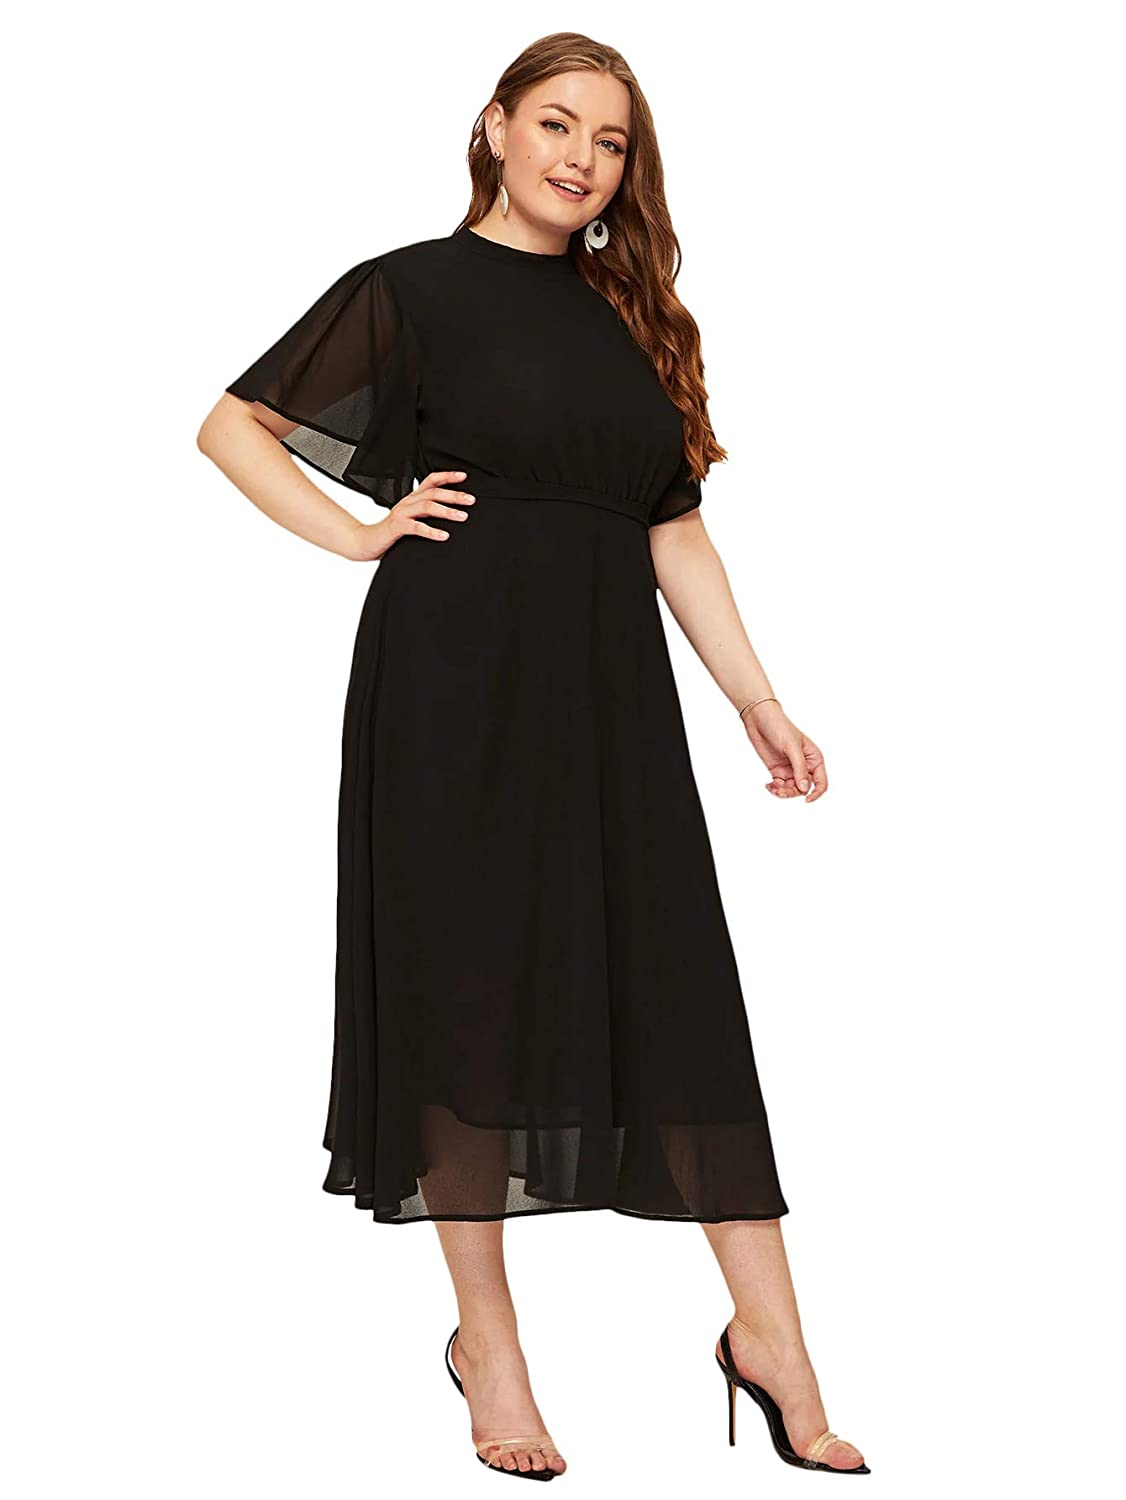 Vintage Evening Dresses and Formal Evening Gowns Milumia Womens Plus Size Formal Chiffon Cocktail Flounce Sleeve Maxi Party Dress $36.99 AT vintagedancer.com